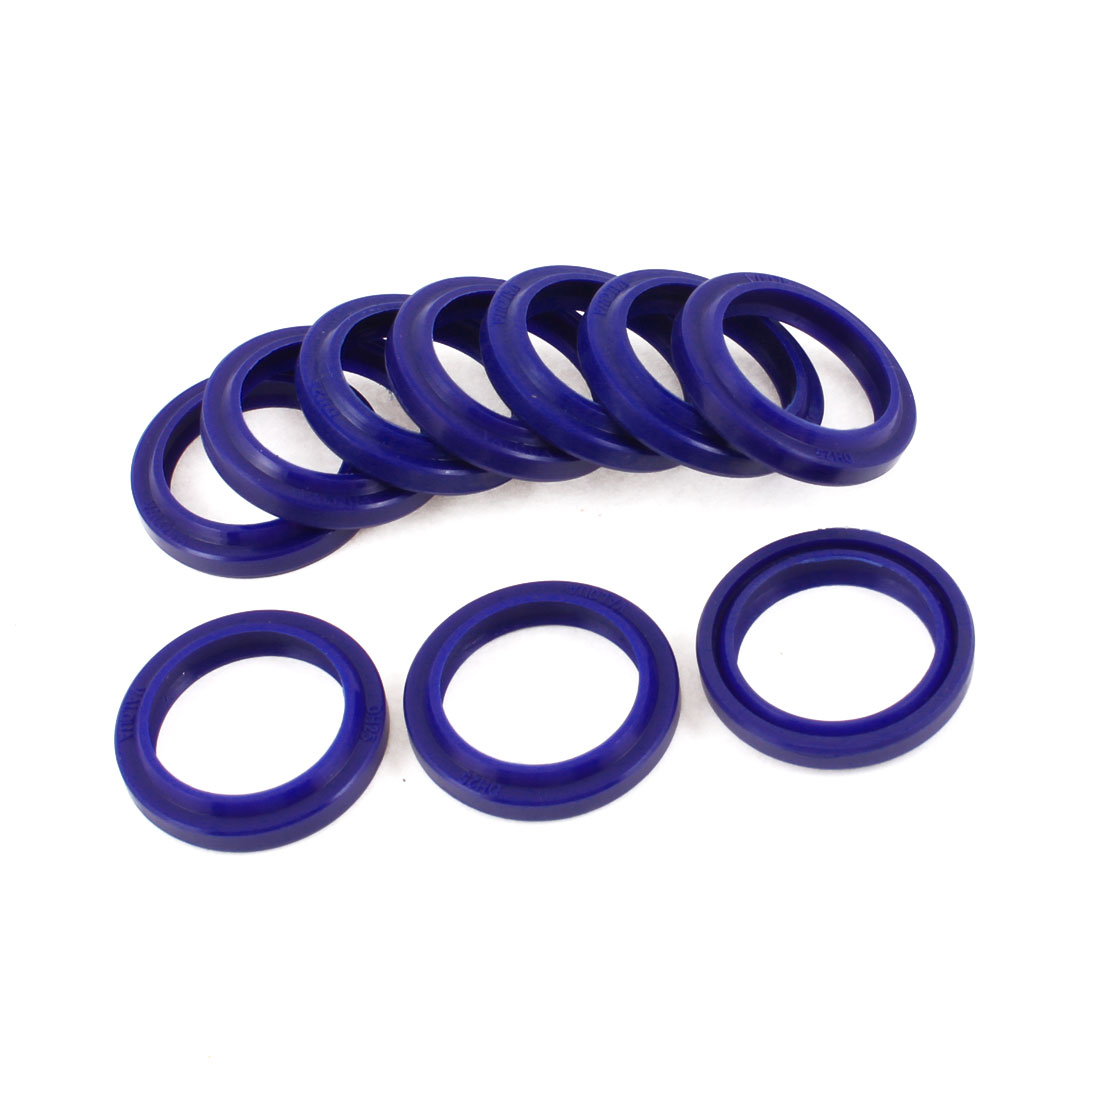 25mm x 35mm x 6mm Blue Round PU Dust Proof Oil Seal Ring Grommets 10 Pcs